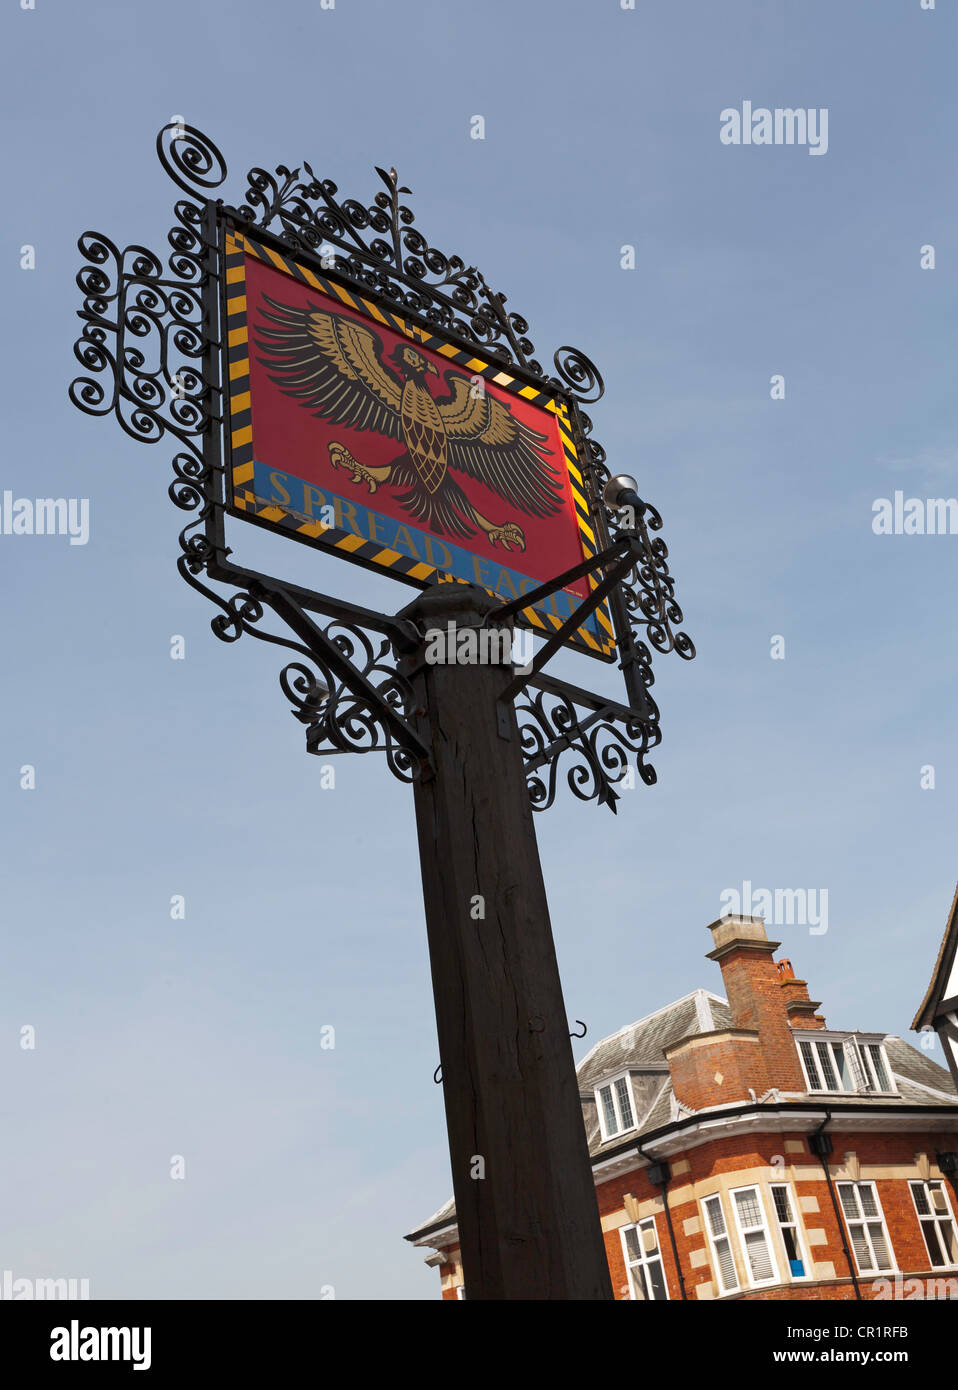 Pub sign in Thame, Oxfordshire against a clear blue sky - Stock Image